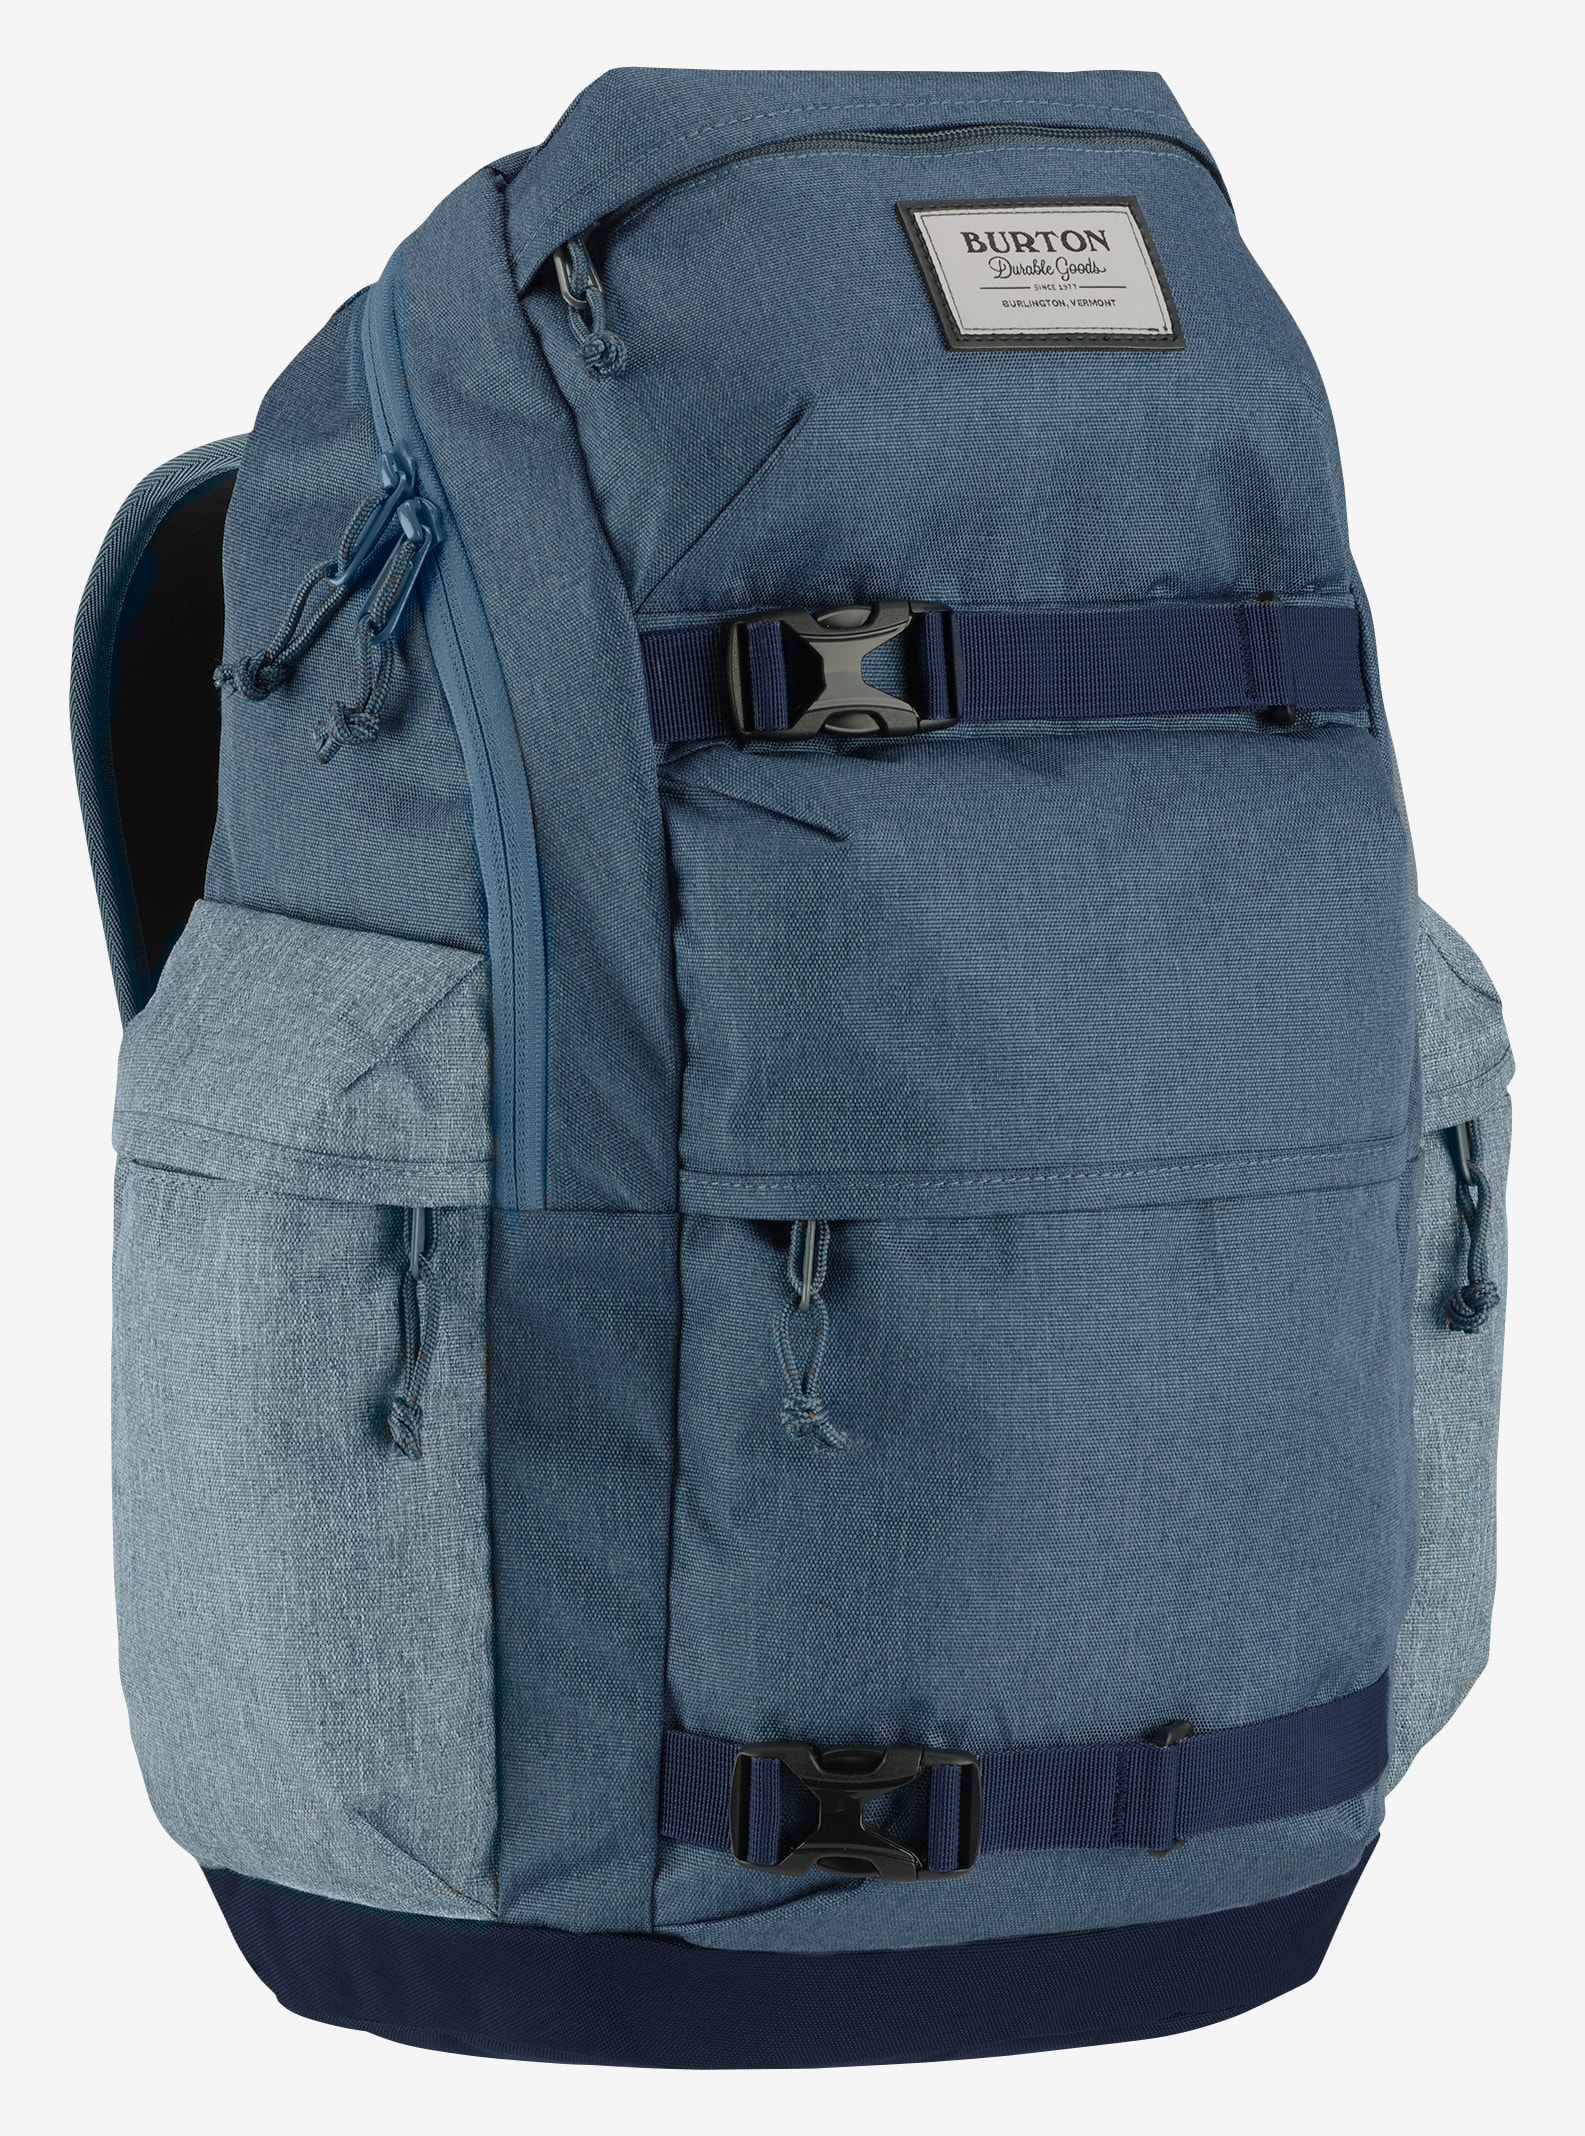 Burton Kilo Backpack shown in LA Sky Heather